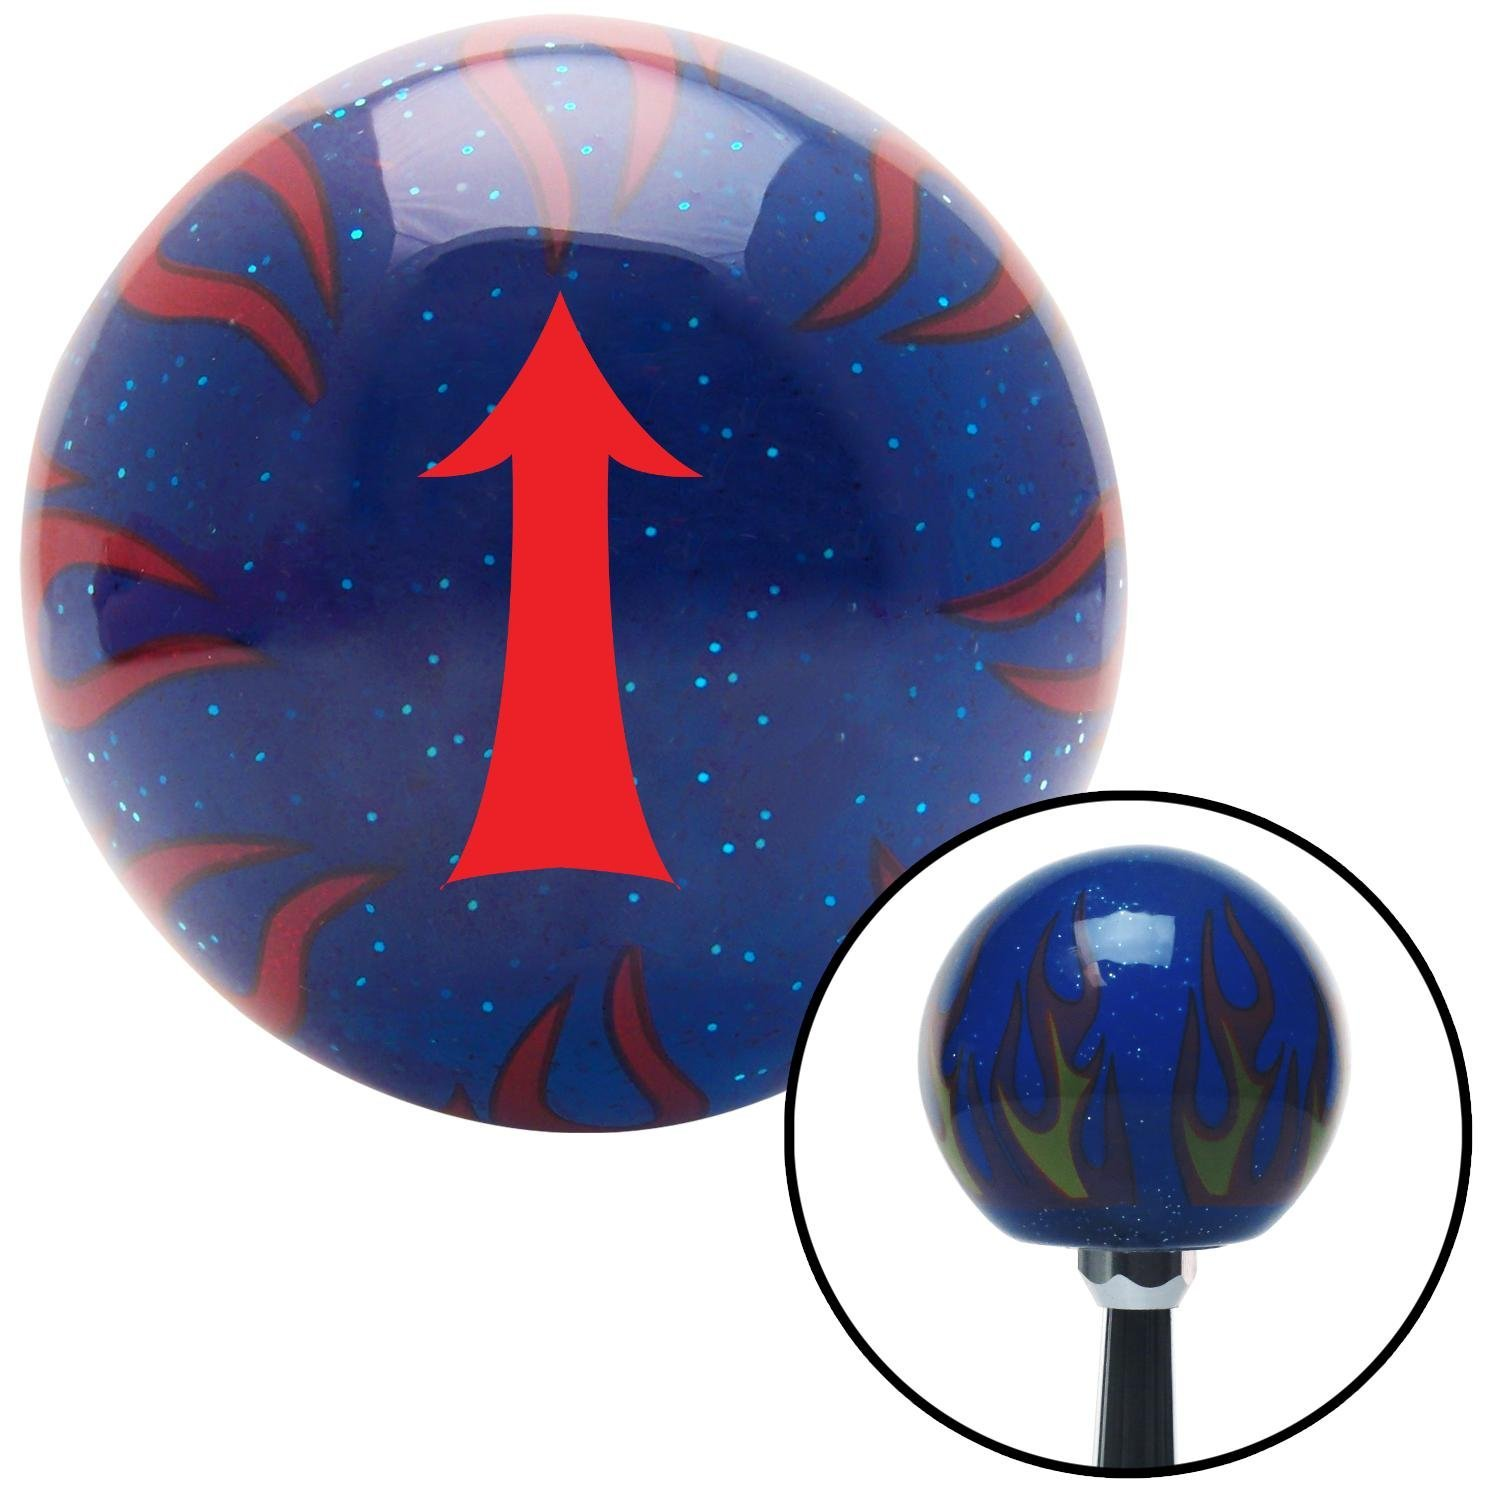 Red Fancy Solid Directional Arrow Up American Shifter 244477 Blue Flame Metal Flake Shift Knob with M16 x 1.5 Insert